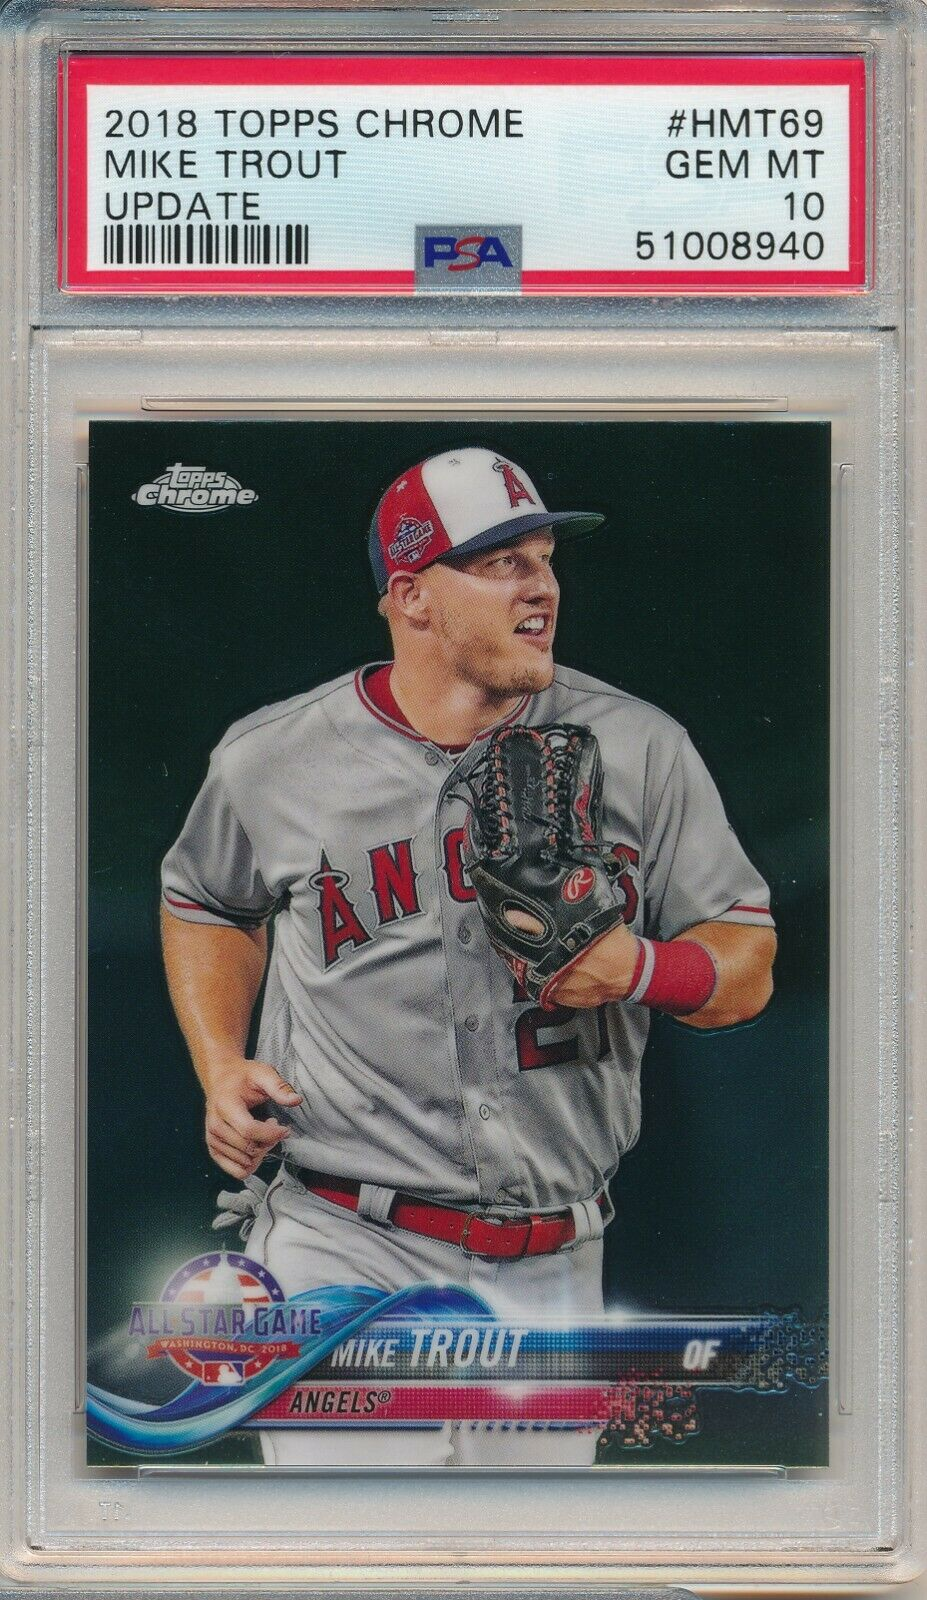 2018 TOPPS UPDATE MIKE TROUT